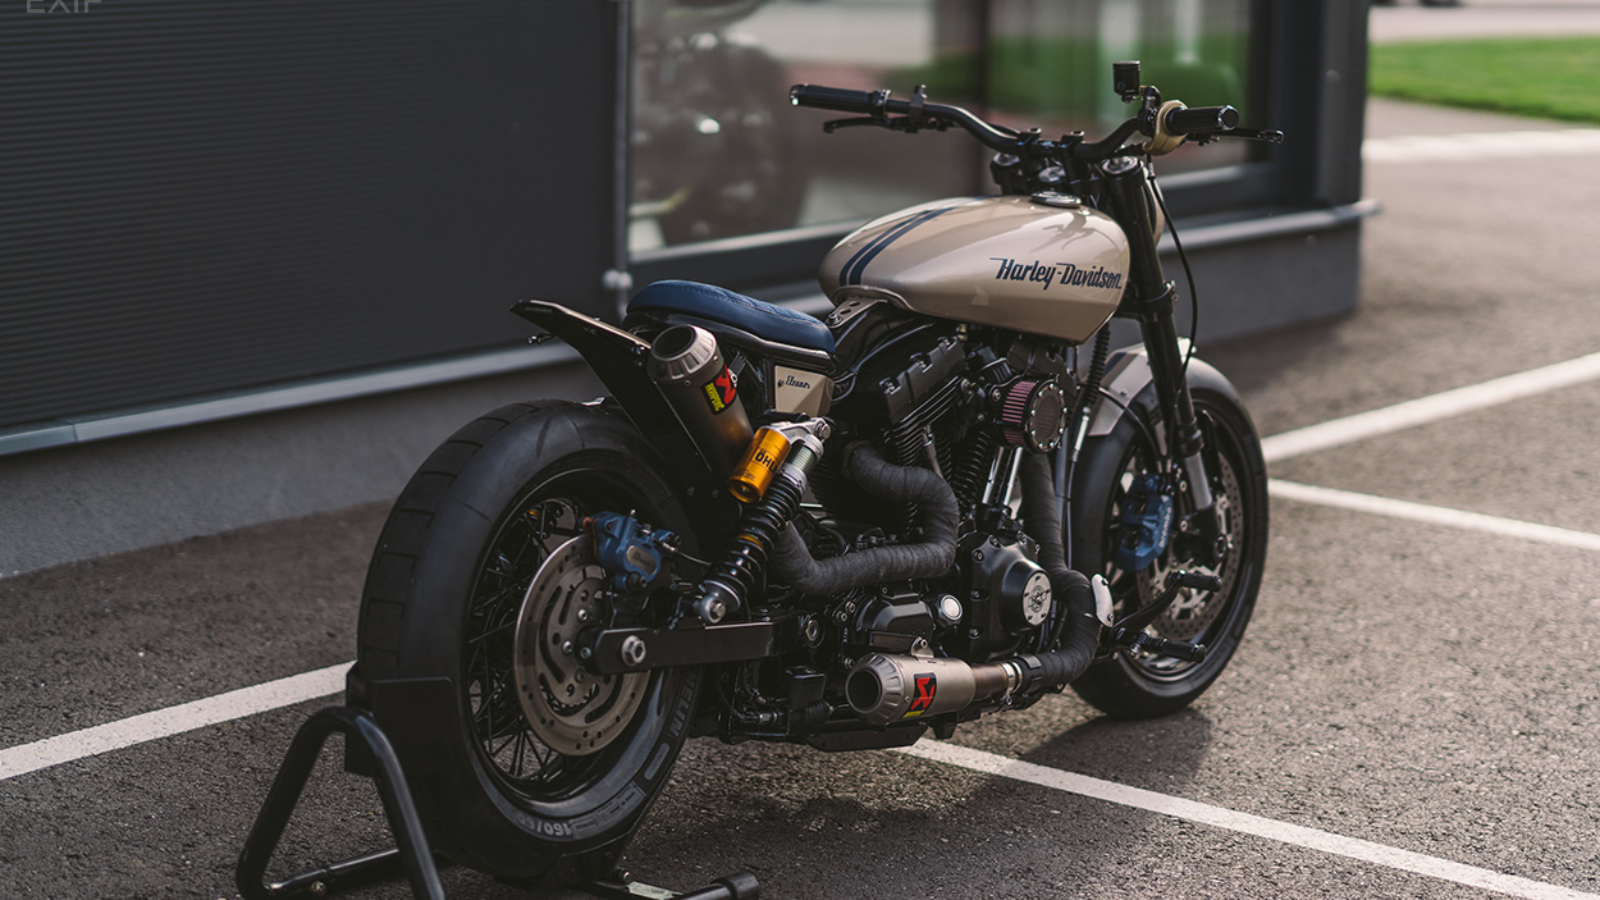 Harley Dyna Custom by NCT is Built to go Fast